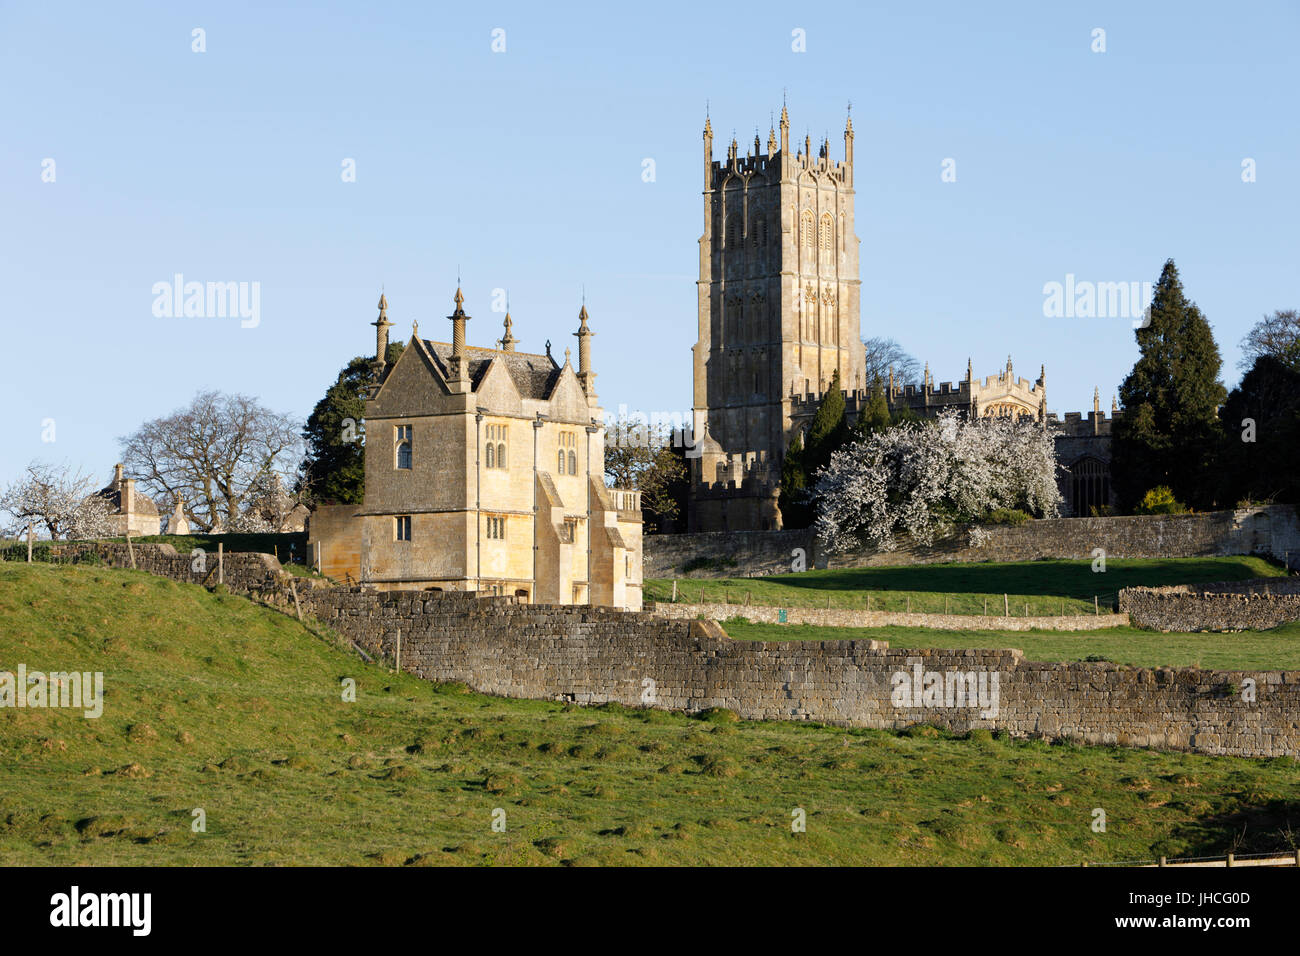 St James' Church and East Banqueting House of old Campden House, Chipping Campden, Cotswolds, Gloucestershire, - Stock Image